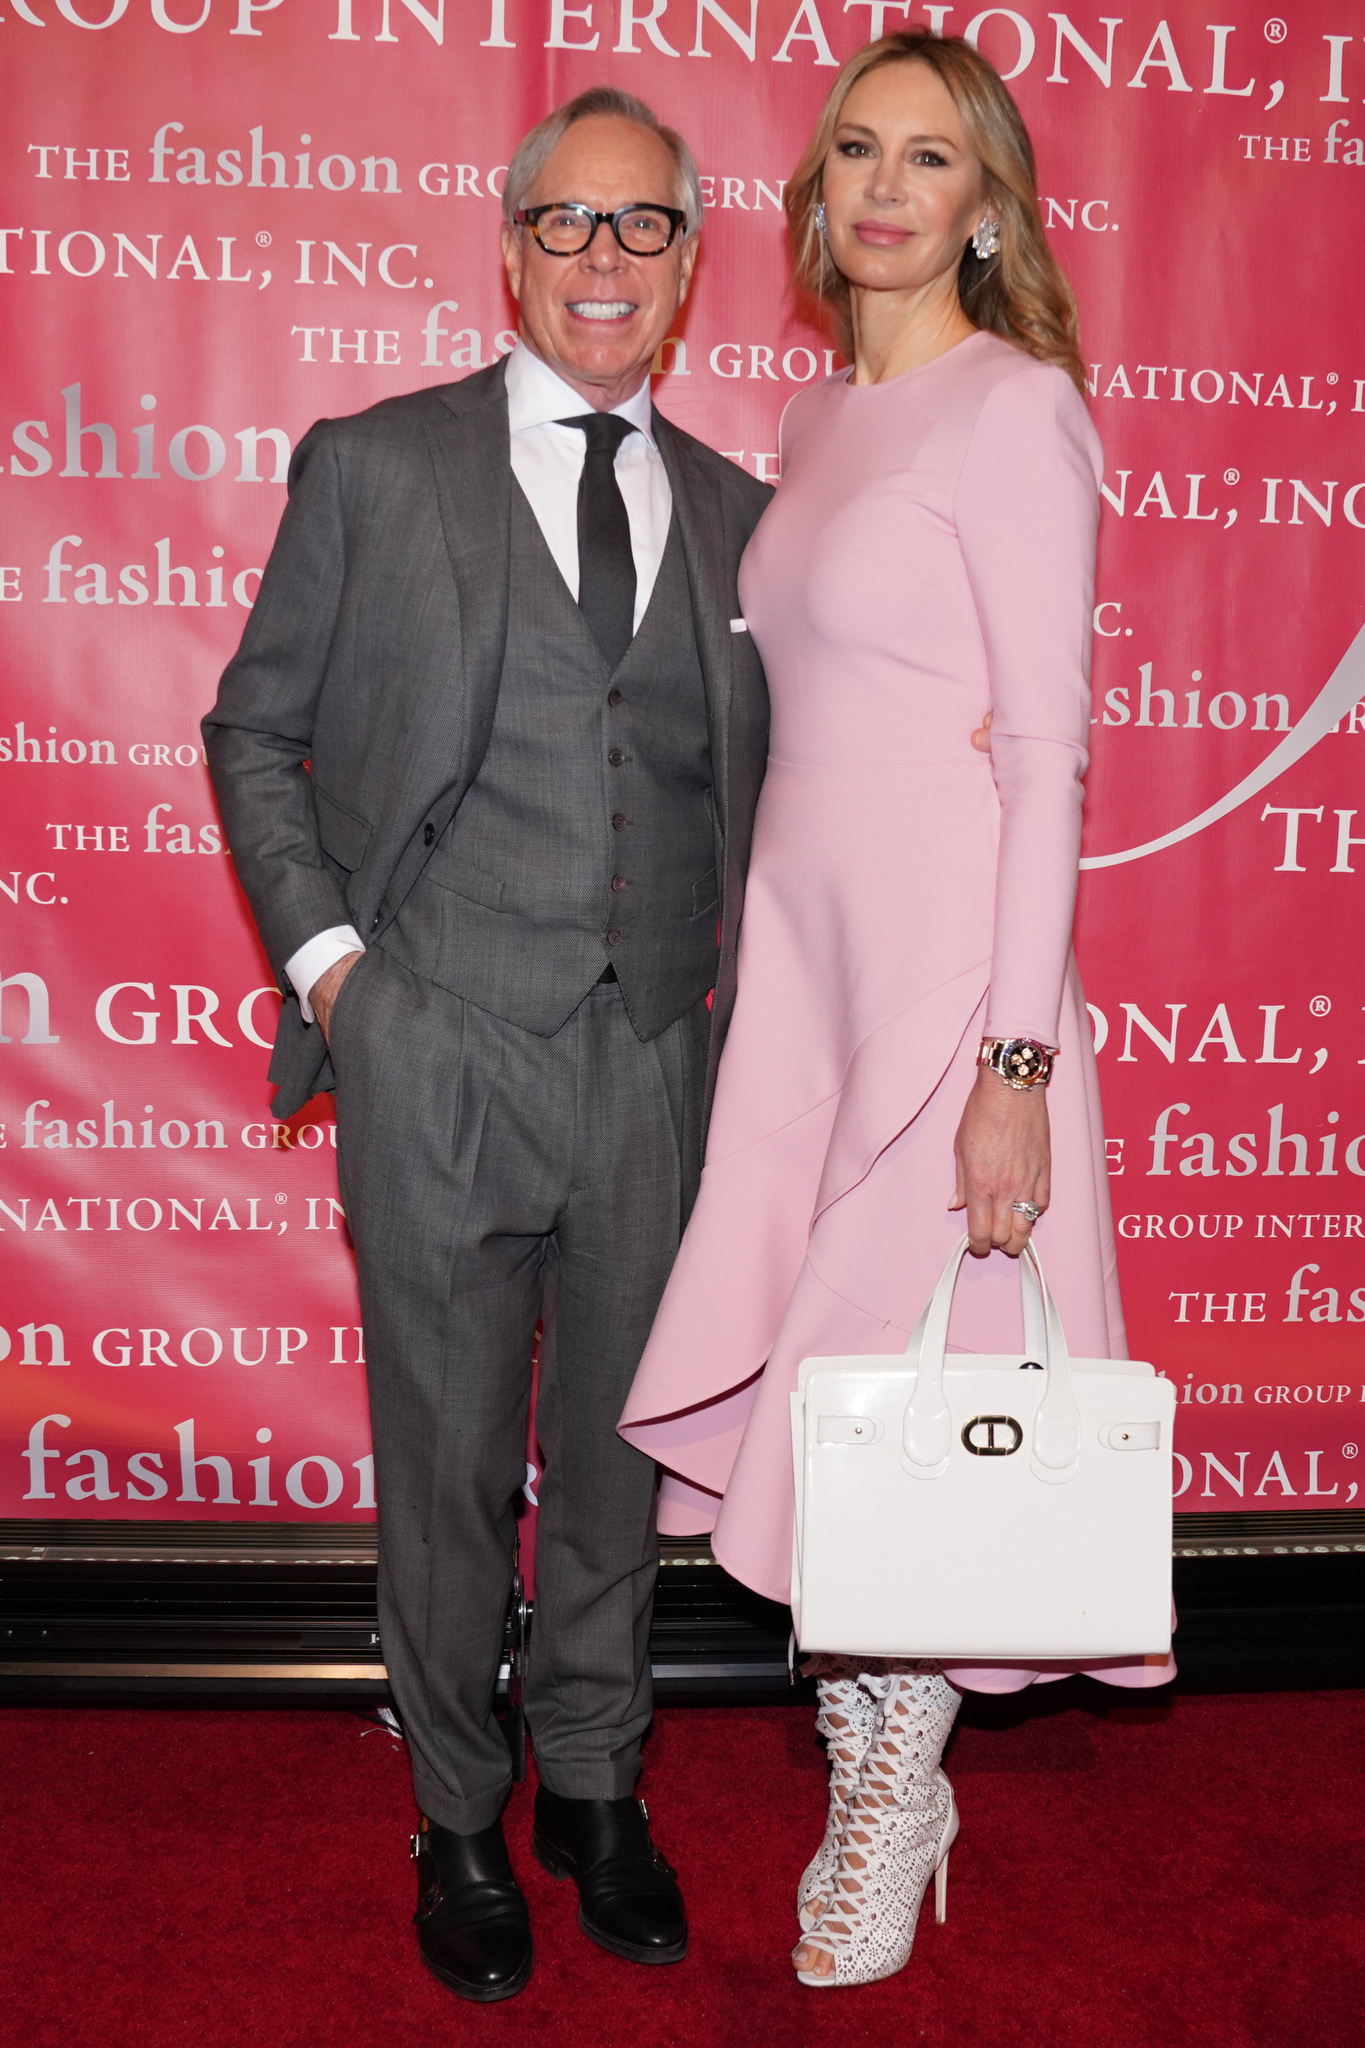 Tommy Hilfiger and Dee Ocleppo at this year's FGI  Rising Star Awards.